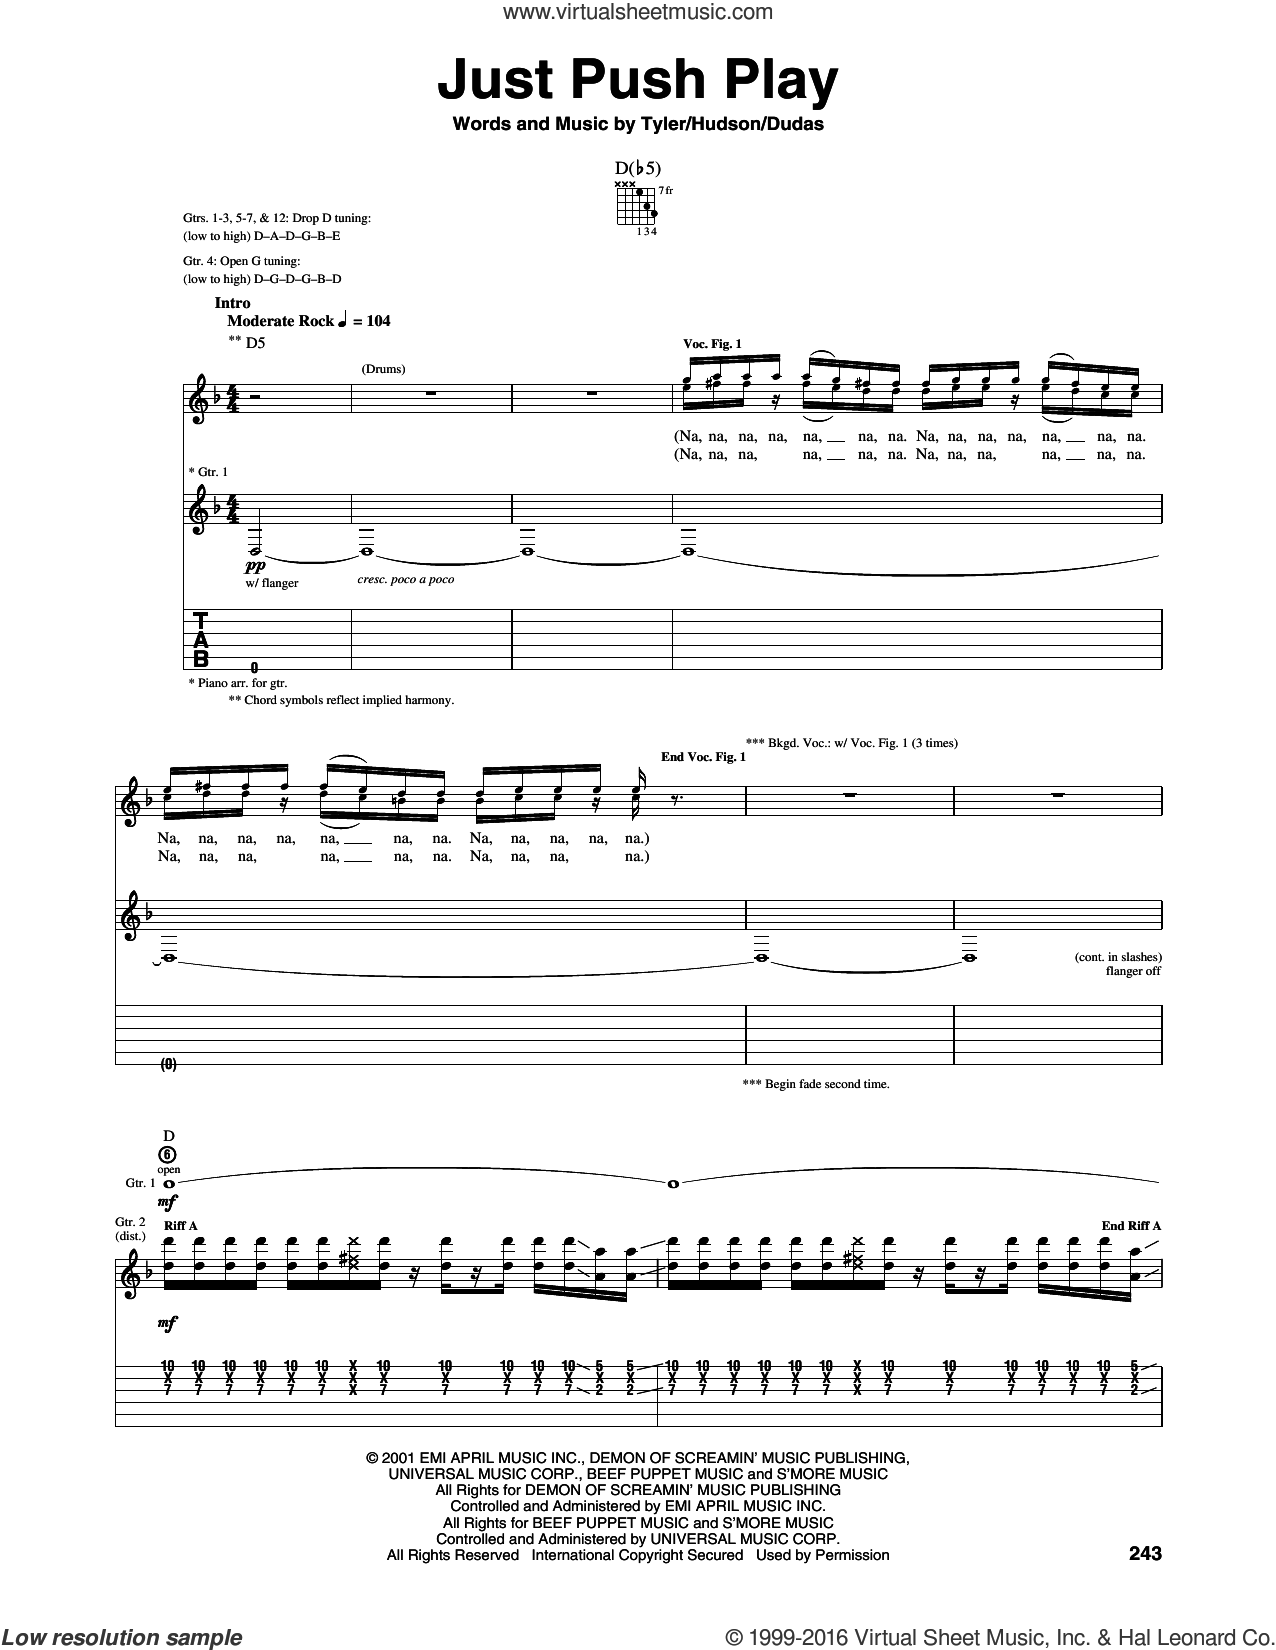 Just Push Play sheet music for guitar (tablature) by Aerosmith, Mark Hudson, Steve Dudas and Steven Tyler, intermediate skill level